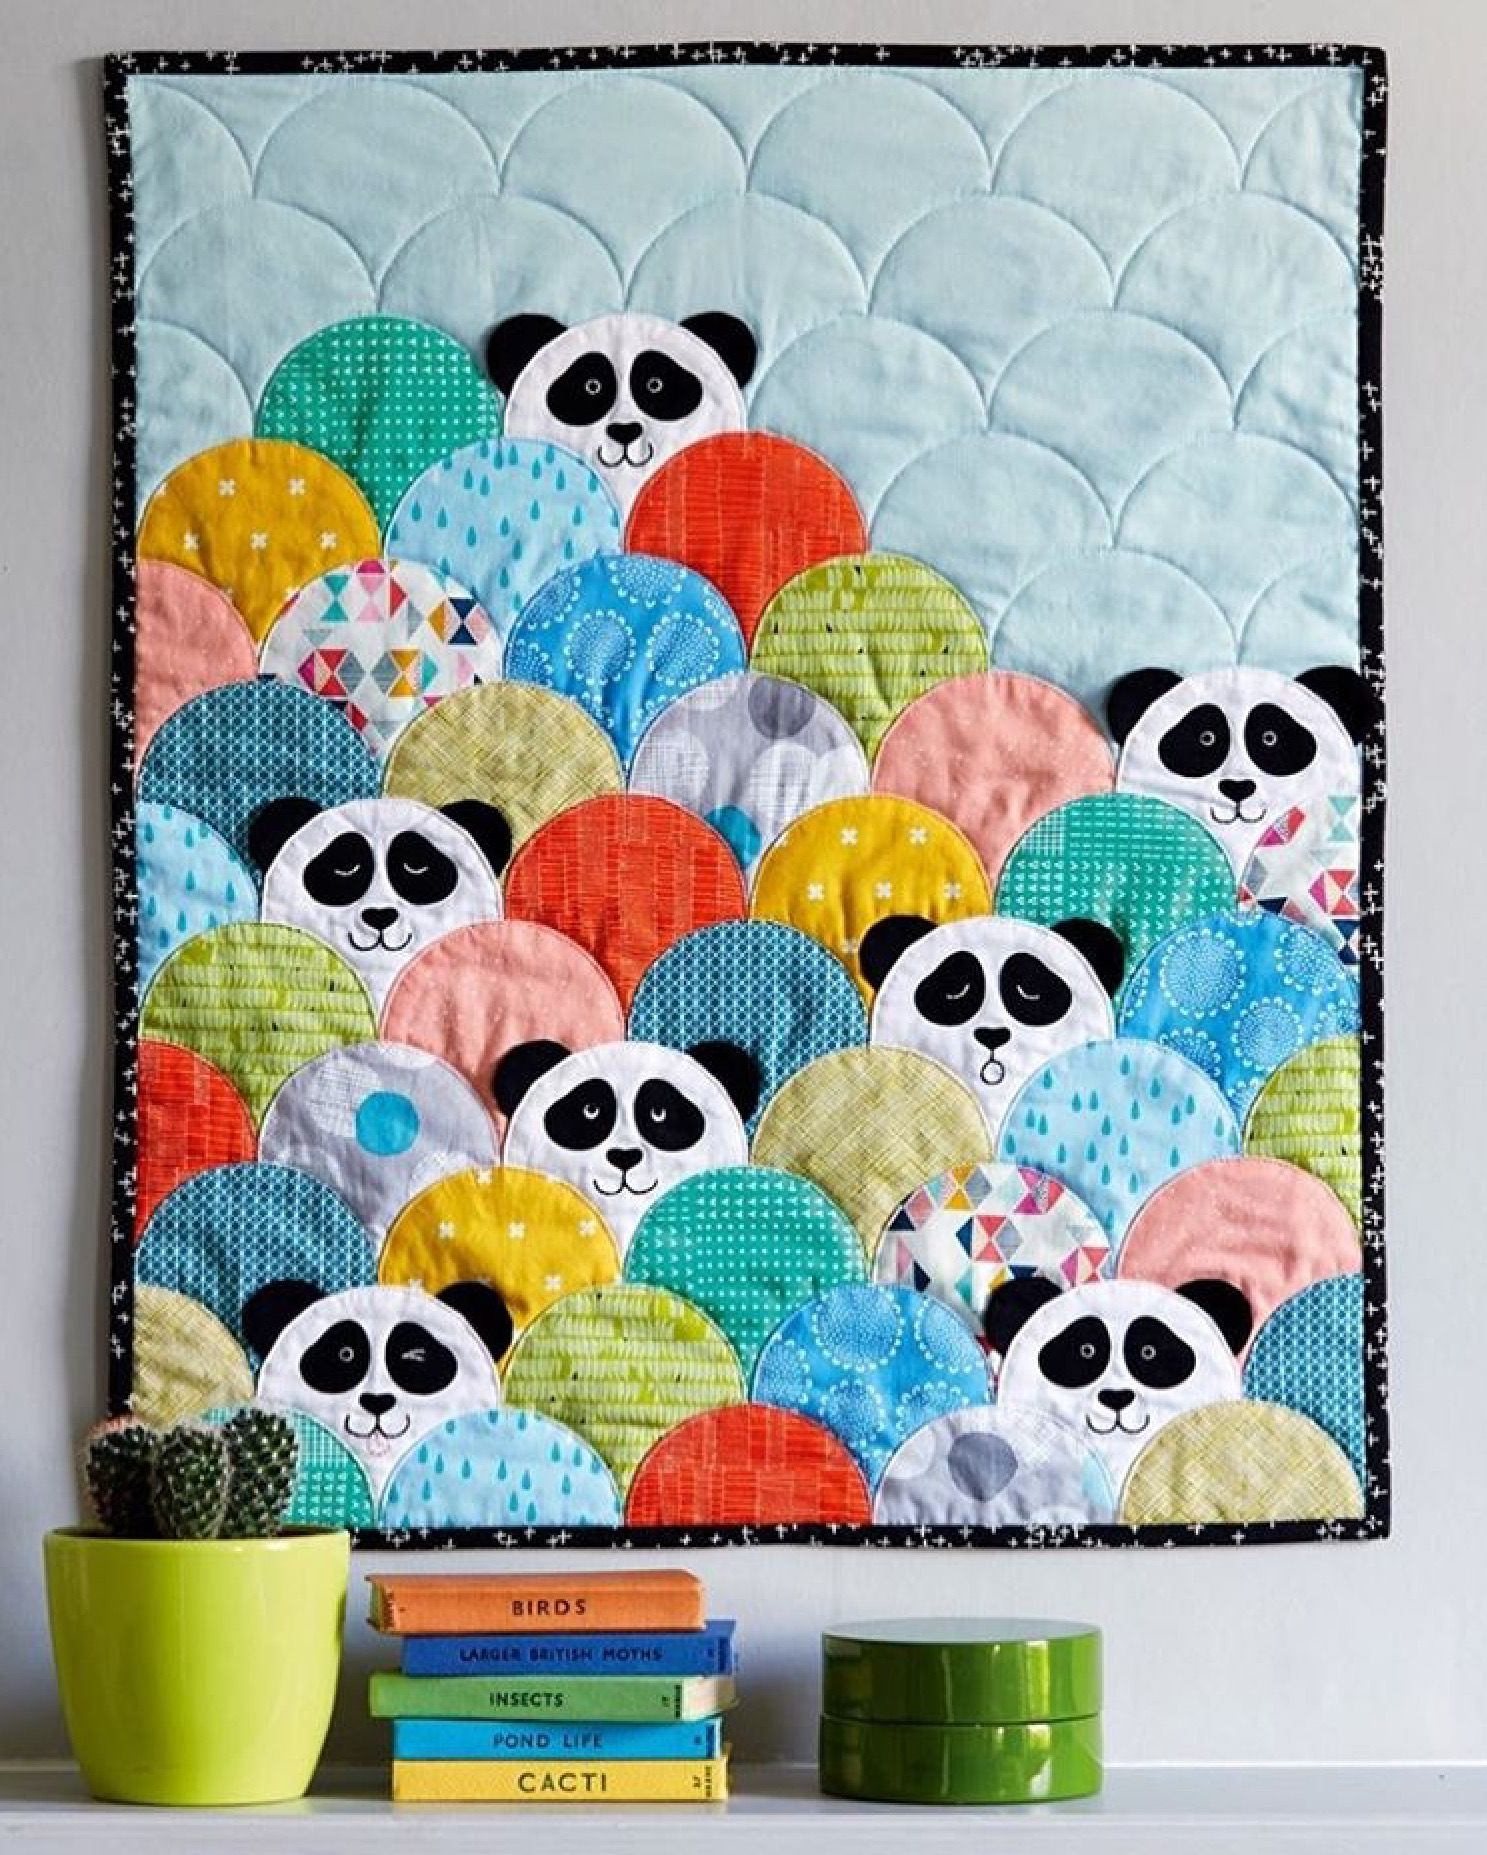 From Love of quilting and patchwork magazine | Mini Quilts ...